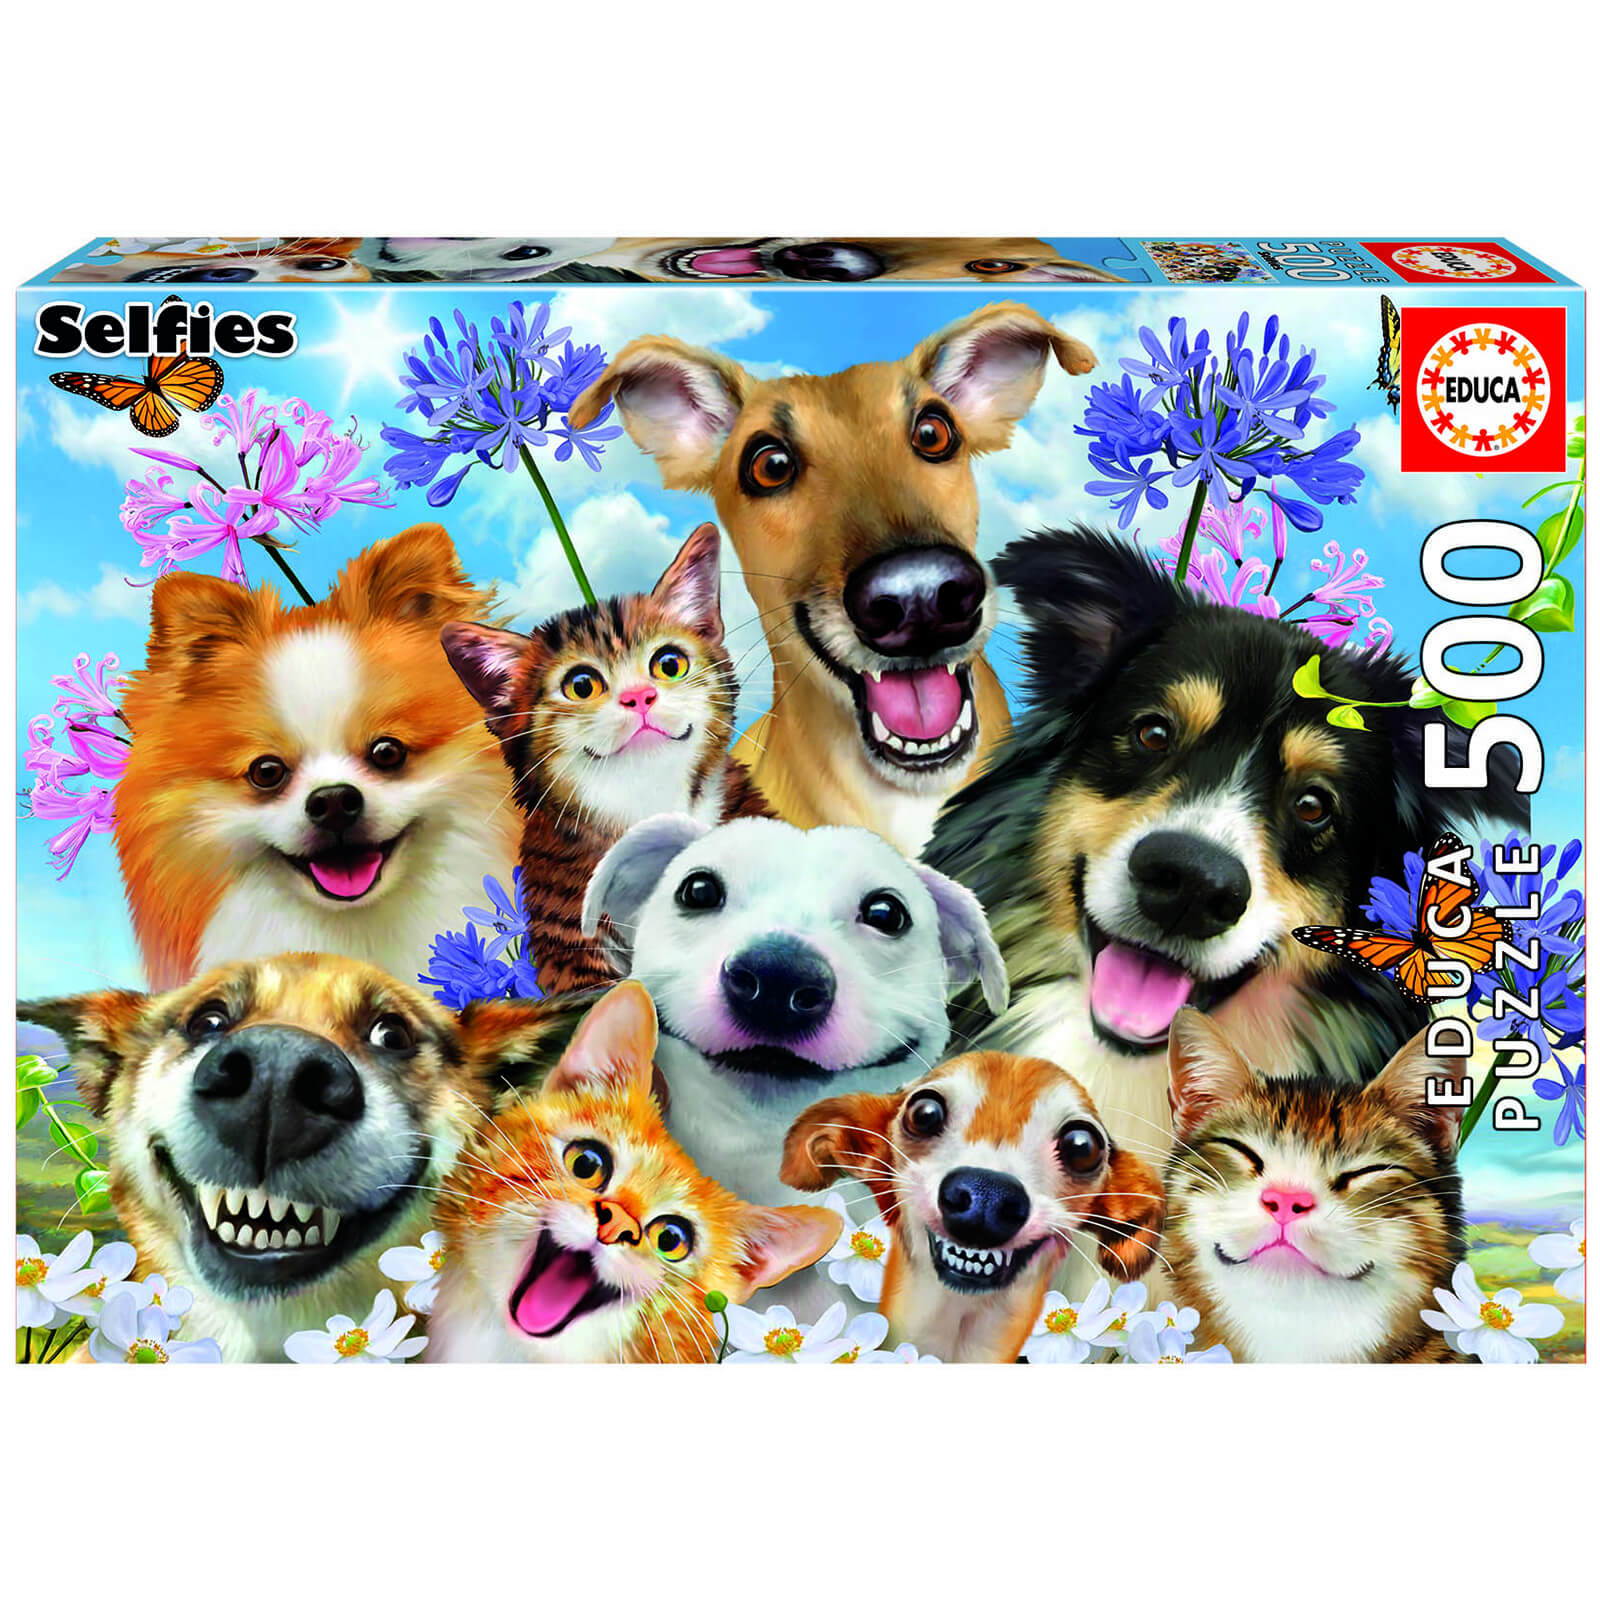 Image of Fun in the Sun Selfie Jigsaw Puzzle (500 Pieces)